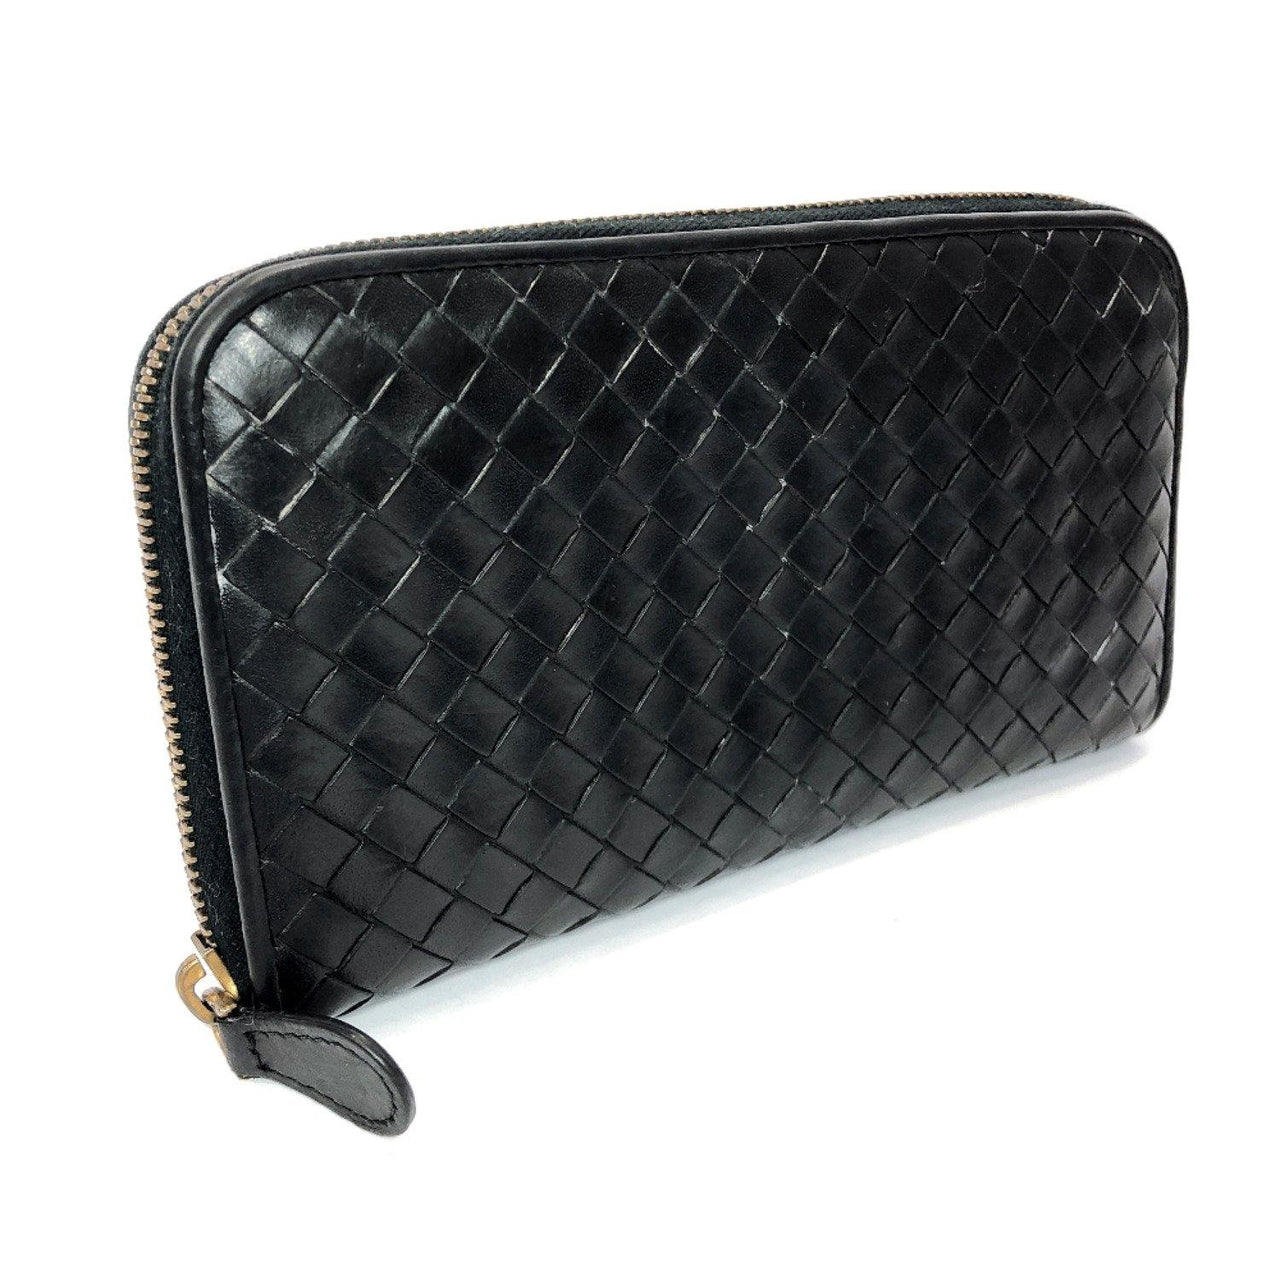 BOTTEGAVENETA purse 114076 VAHF1 1000 Intrecciato leather black unisex Used - JP-BRANDS.com